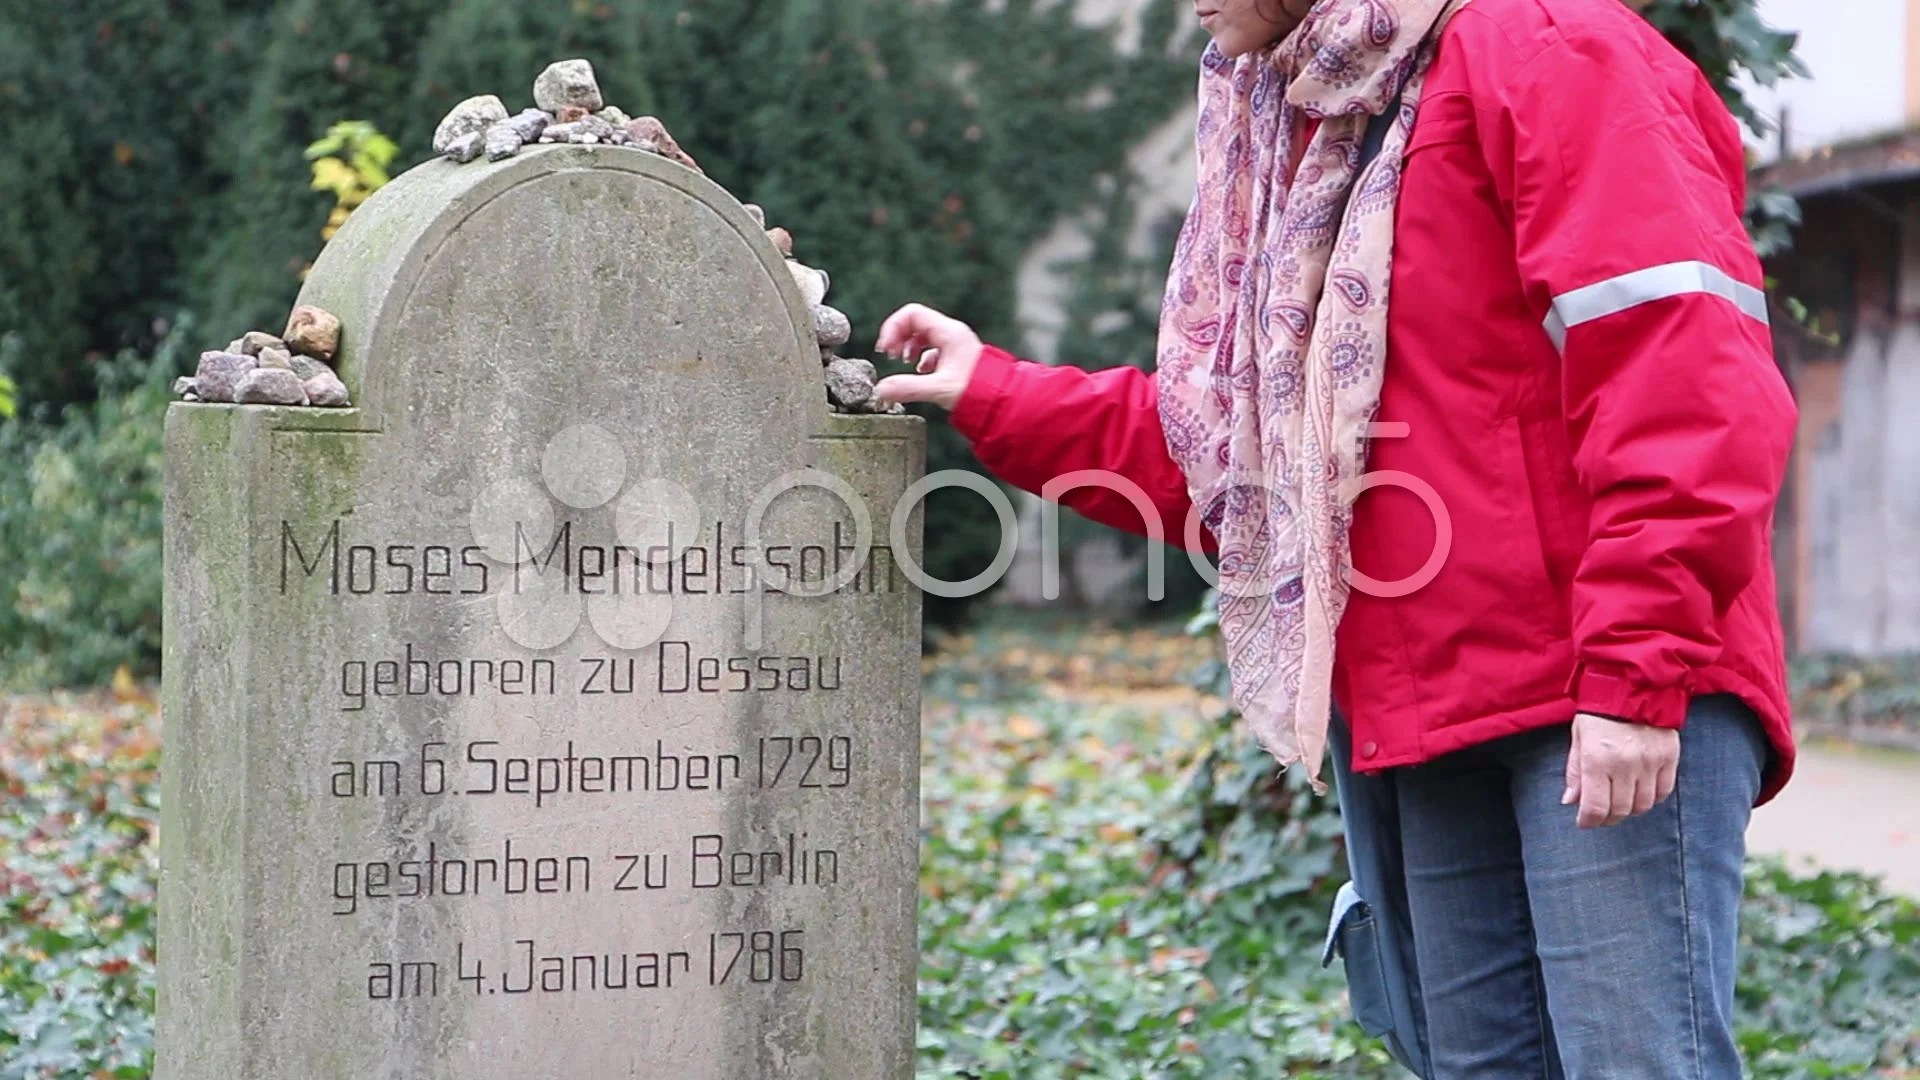 Jewish Cemetery At Grosse Hamburger Strasse In Berlin Germany Hd